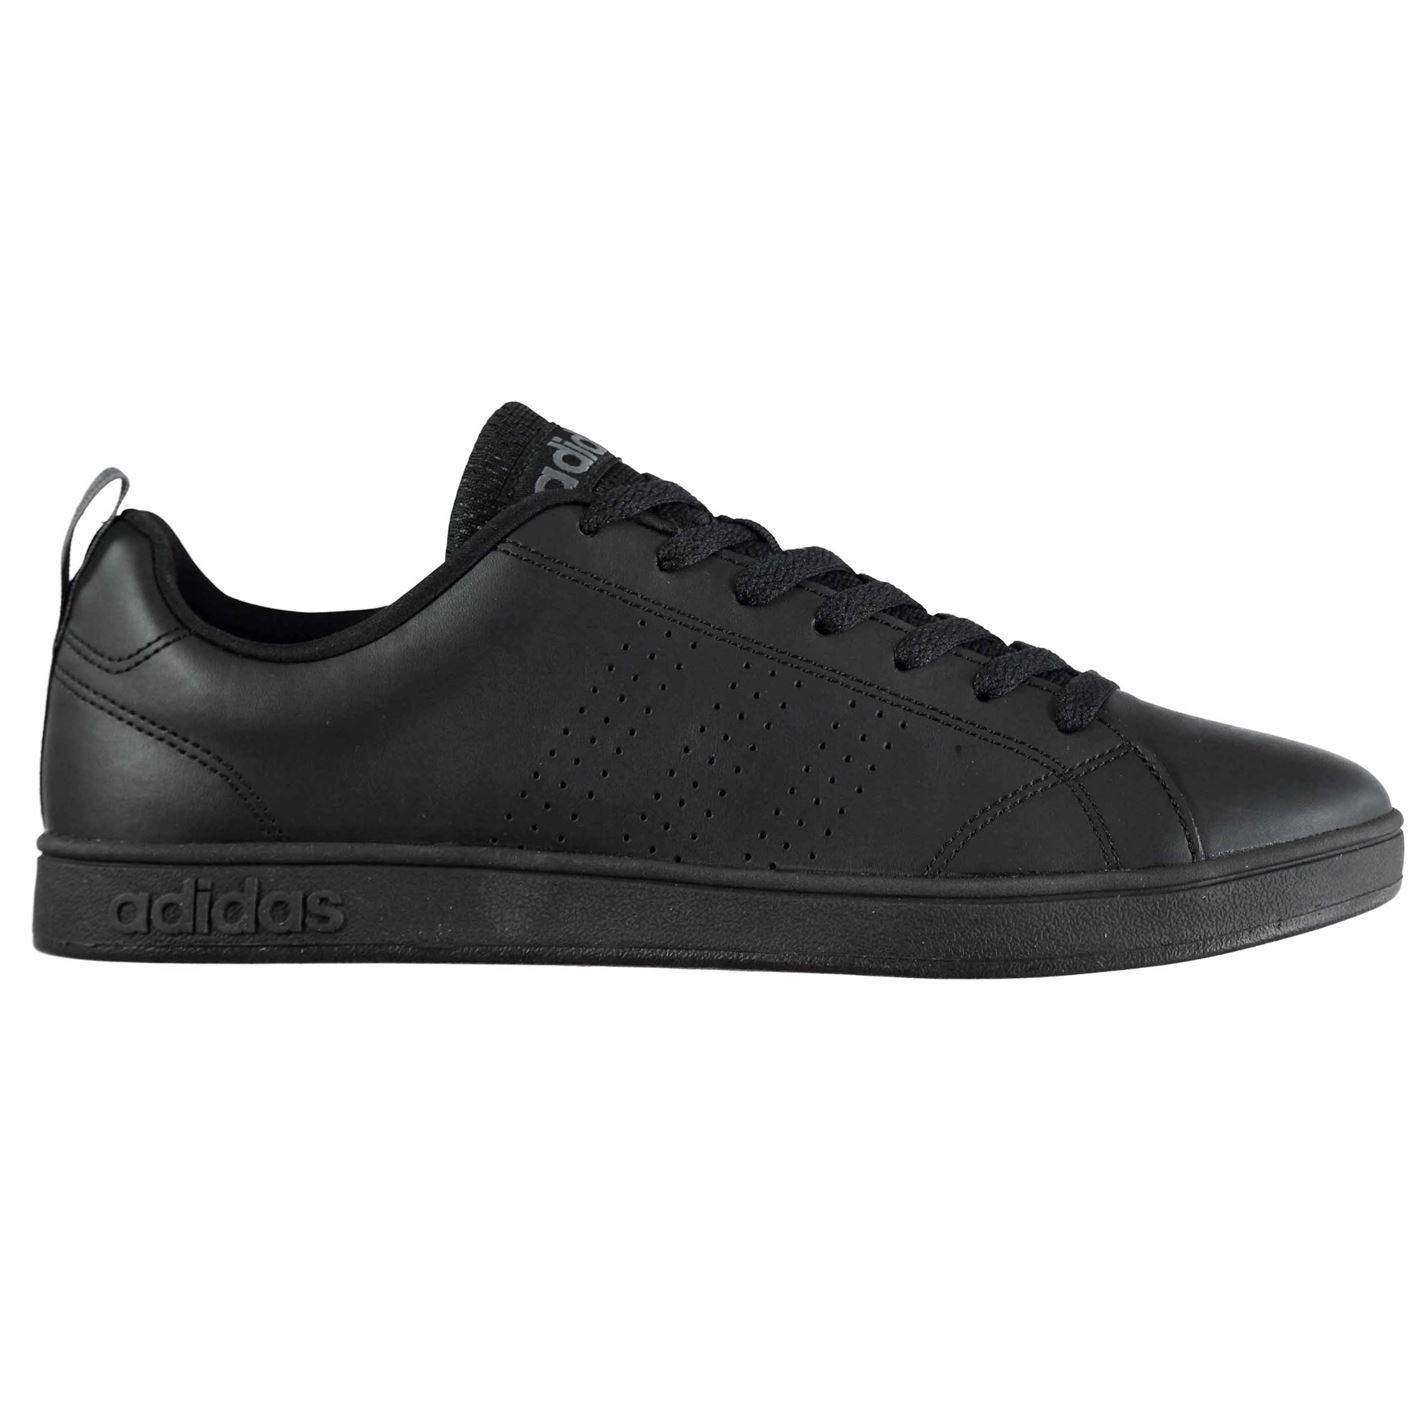 adidas Neo Label Advantage Clean VS Black Mens Casual Shoes Trainers F99253 UK 9. About this product. Picture 1 of 2; Picture 2 of 2